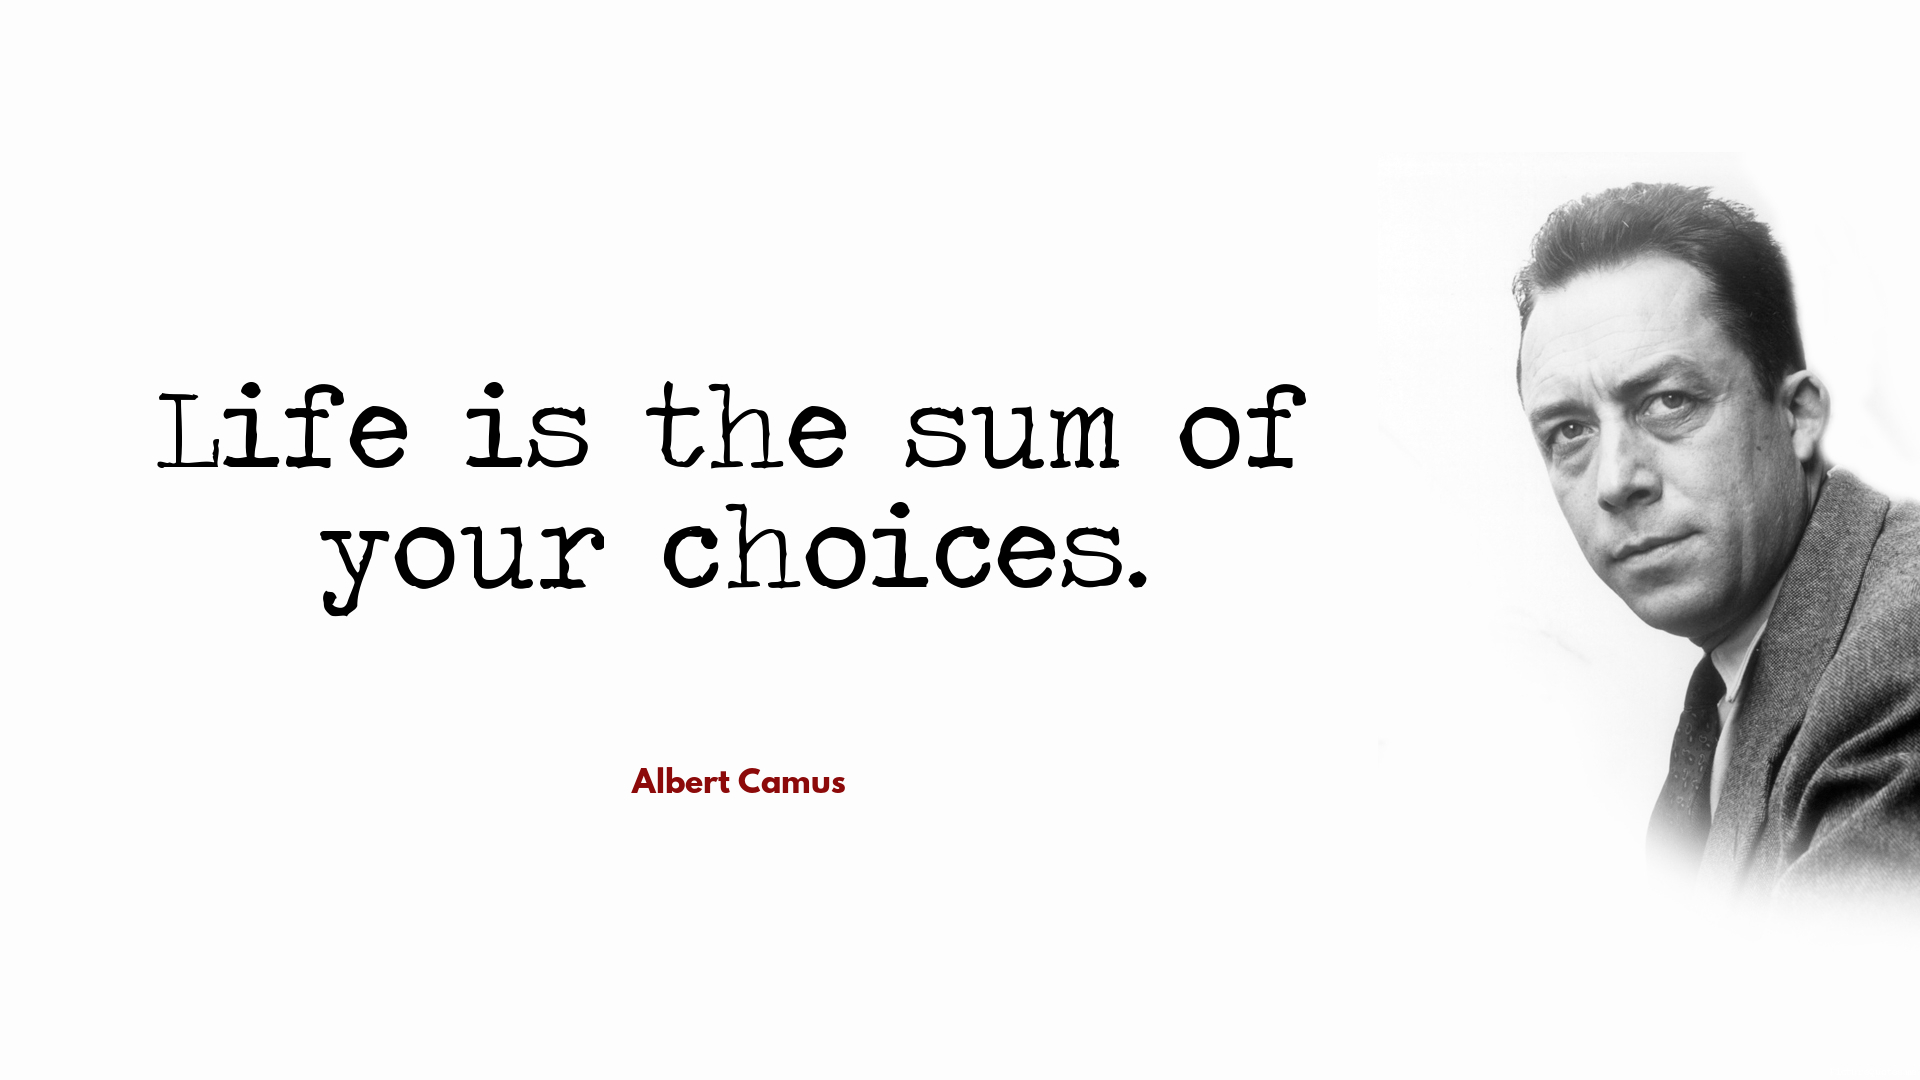 Albert camus quote about unique normal energy different - Life Is The Sum Of Your Choices